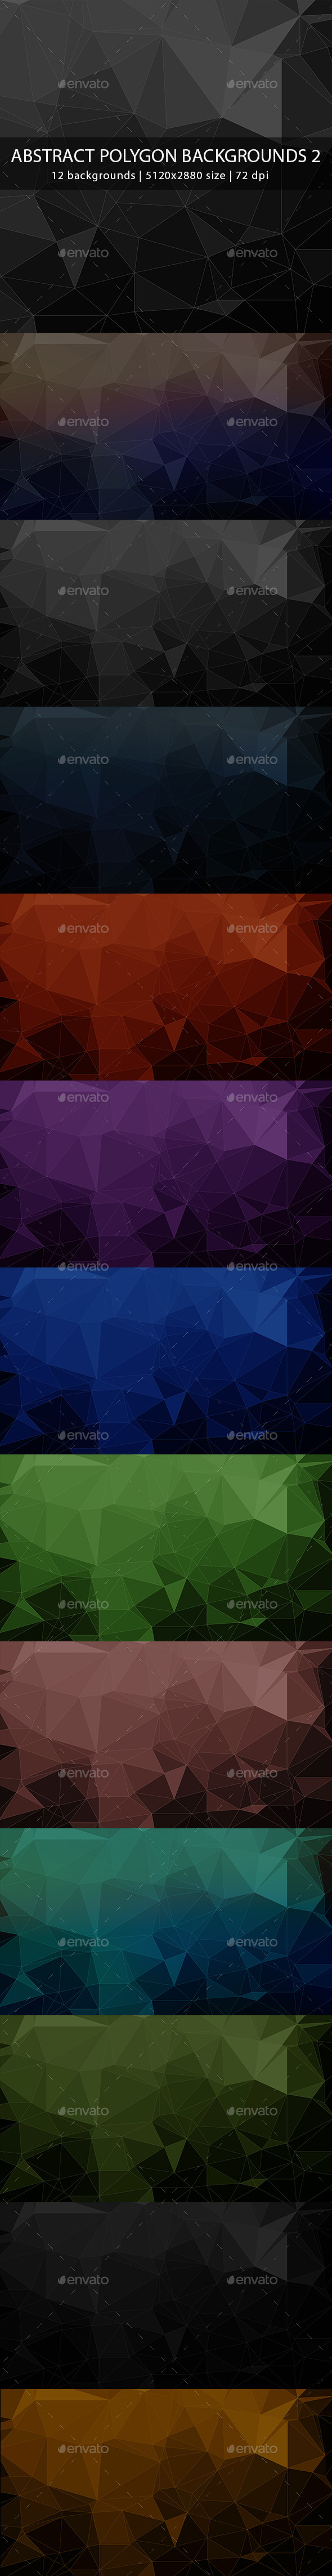 GraphicRiver Abstract Polygon Backgrounds 2 9638859